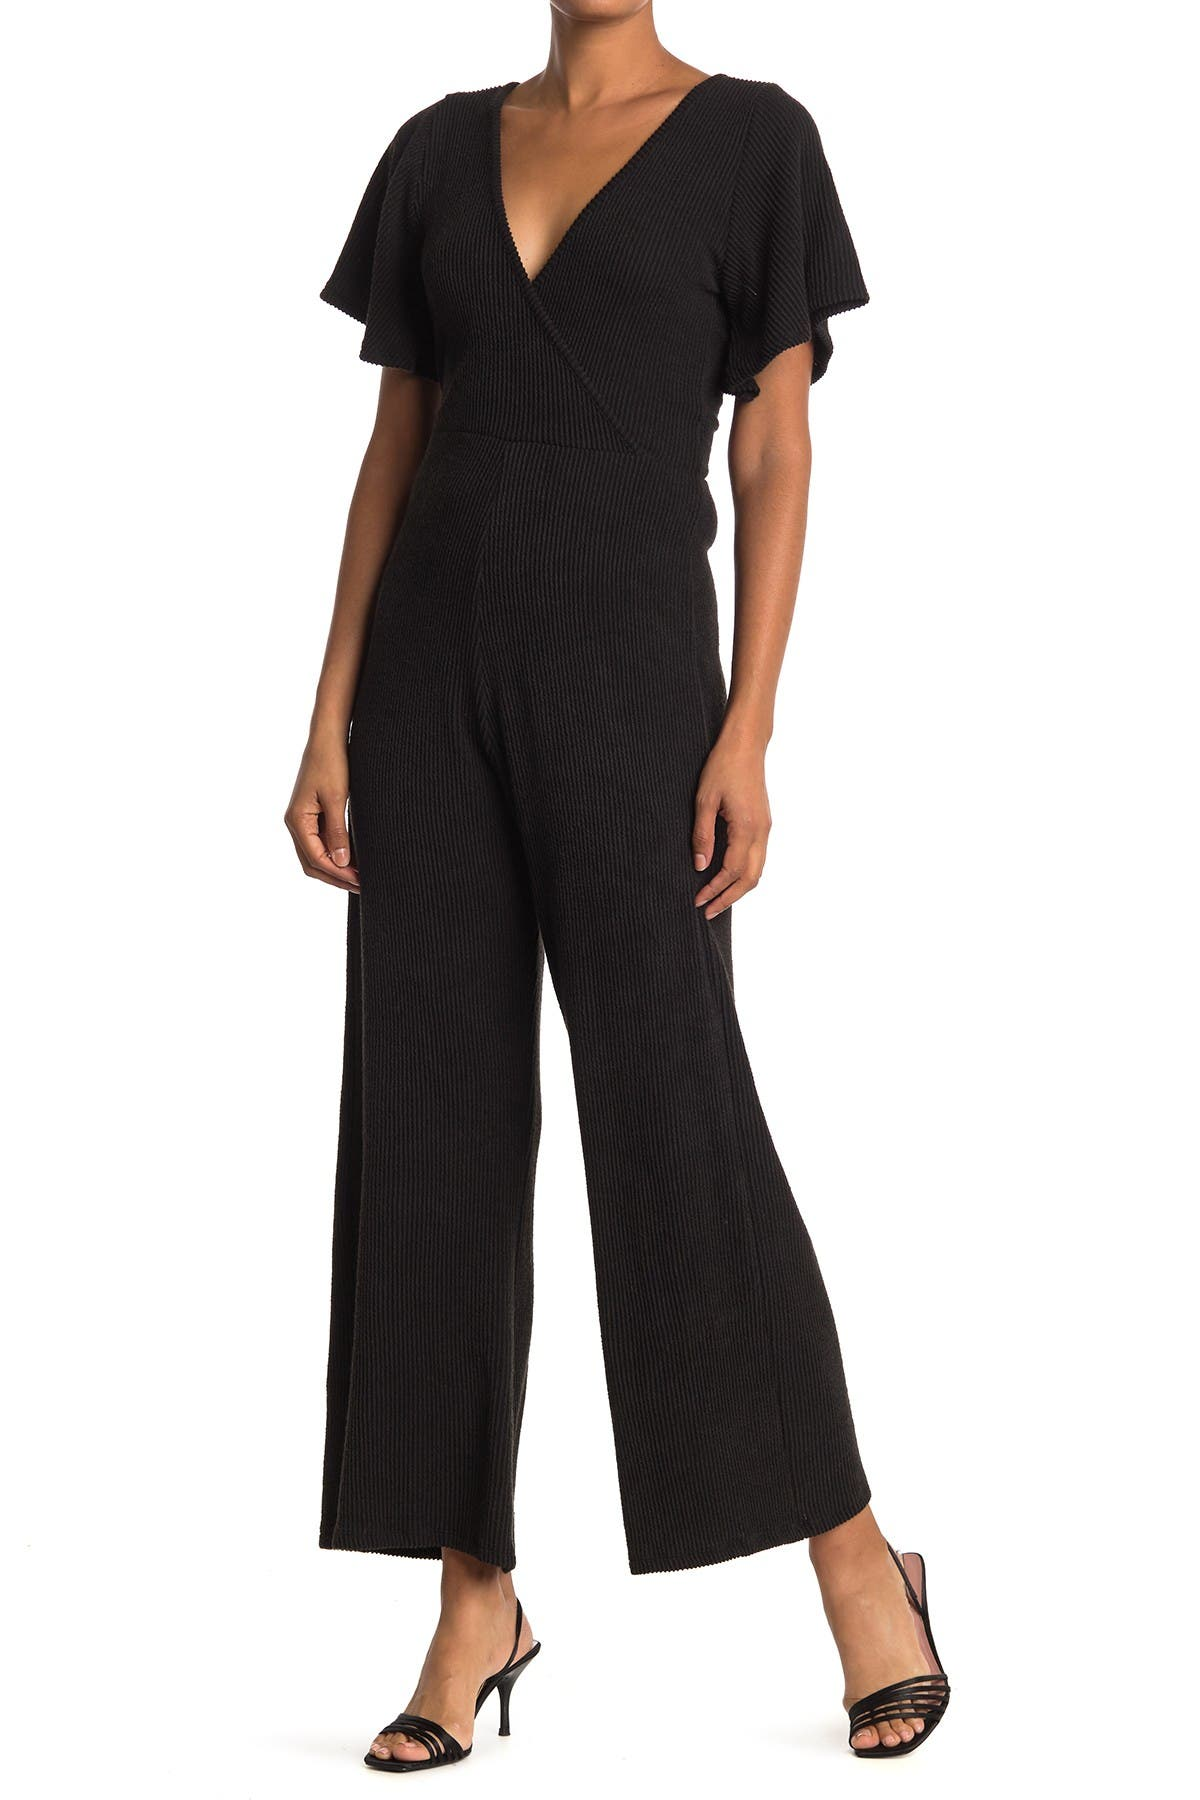 Image of Velvet Torch Ribbed Knit Kimono Jumpsuit